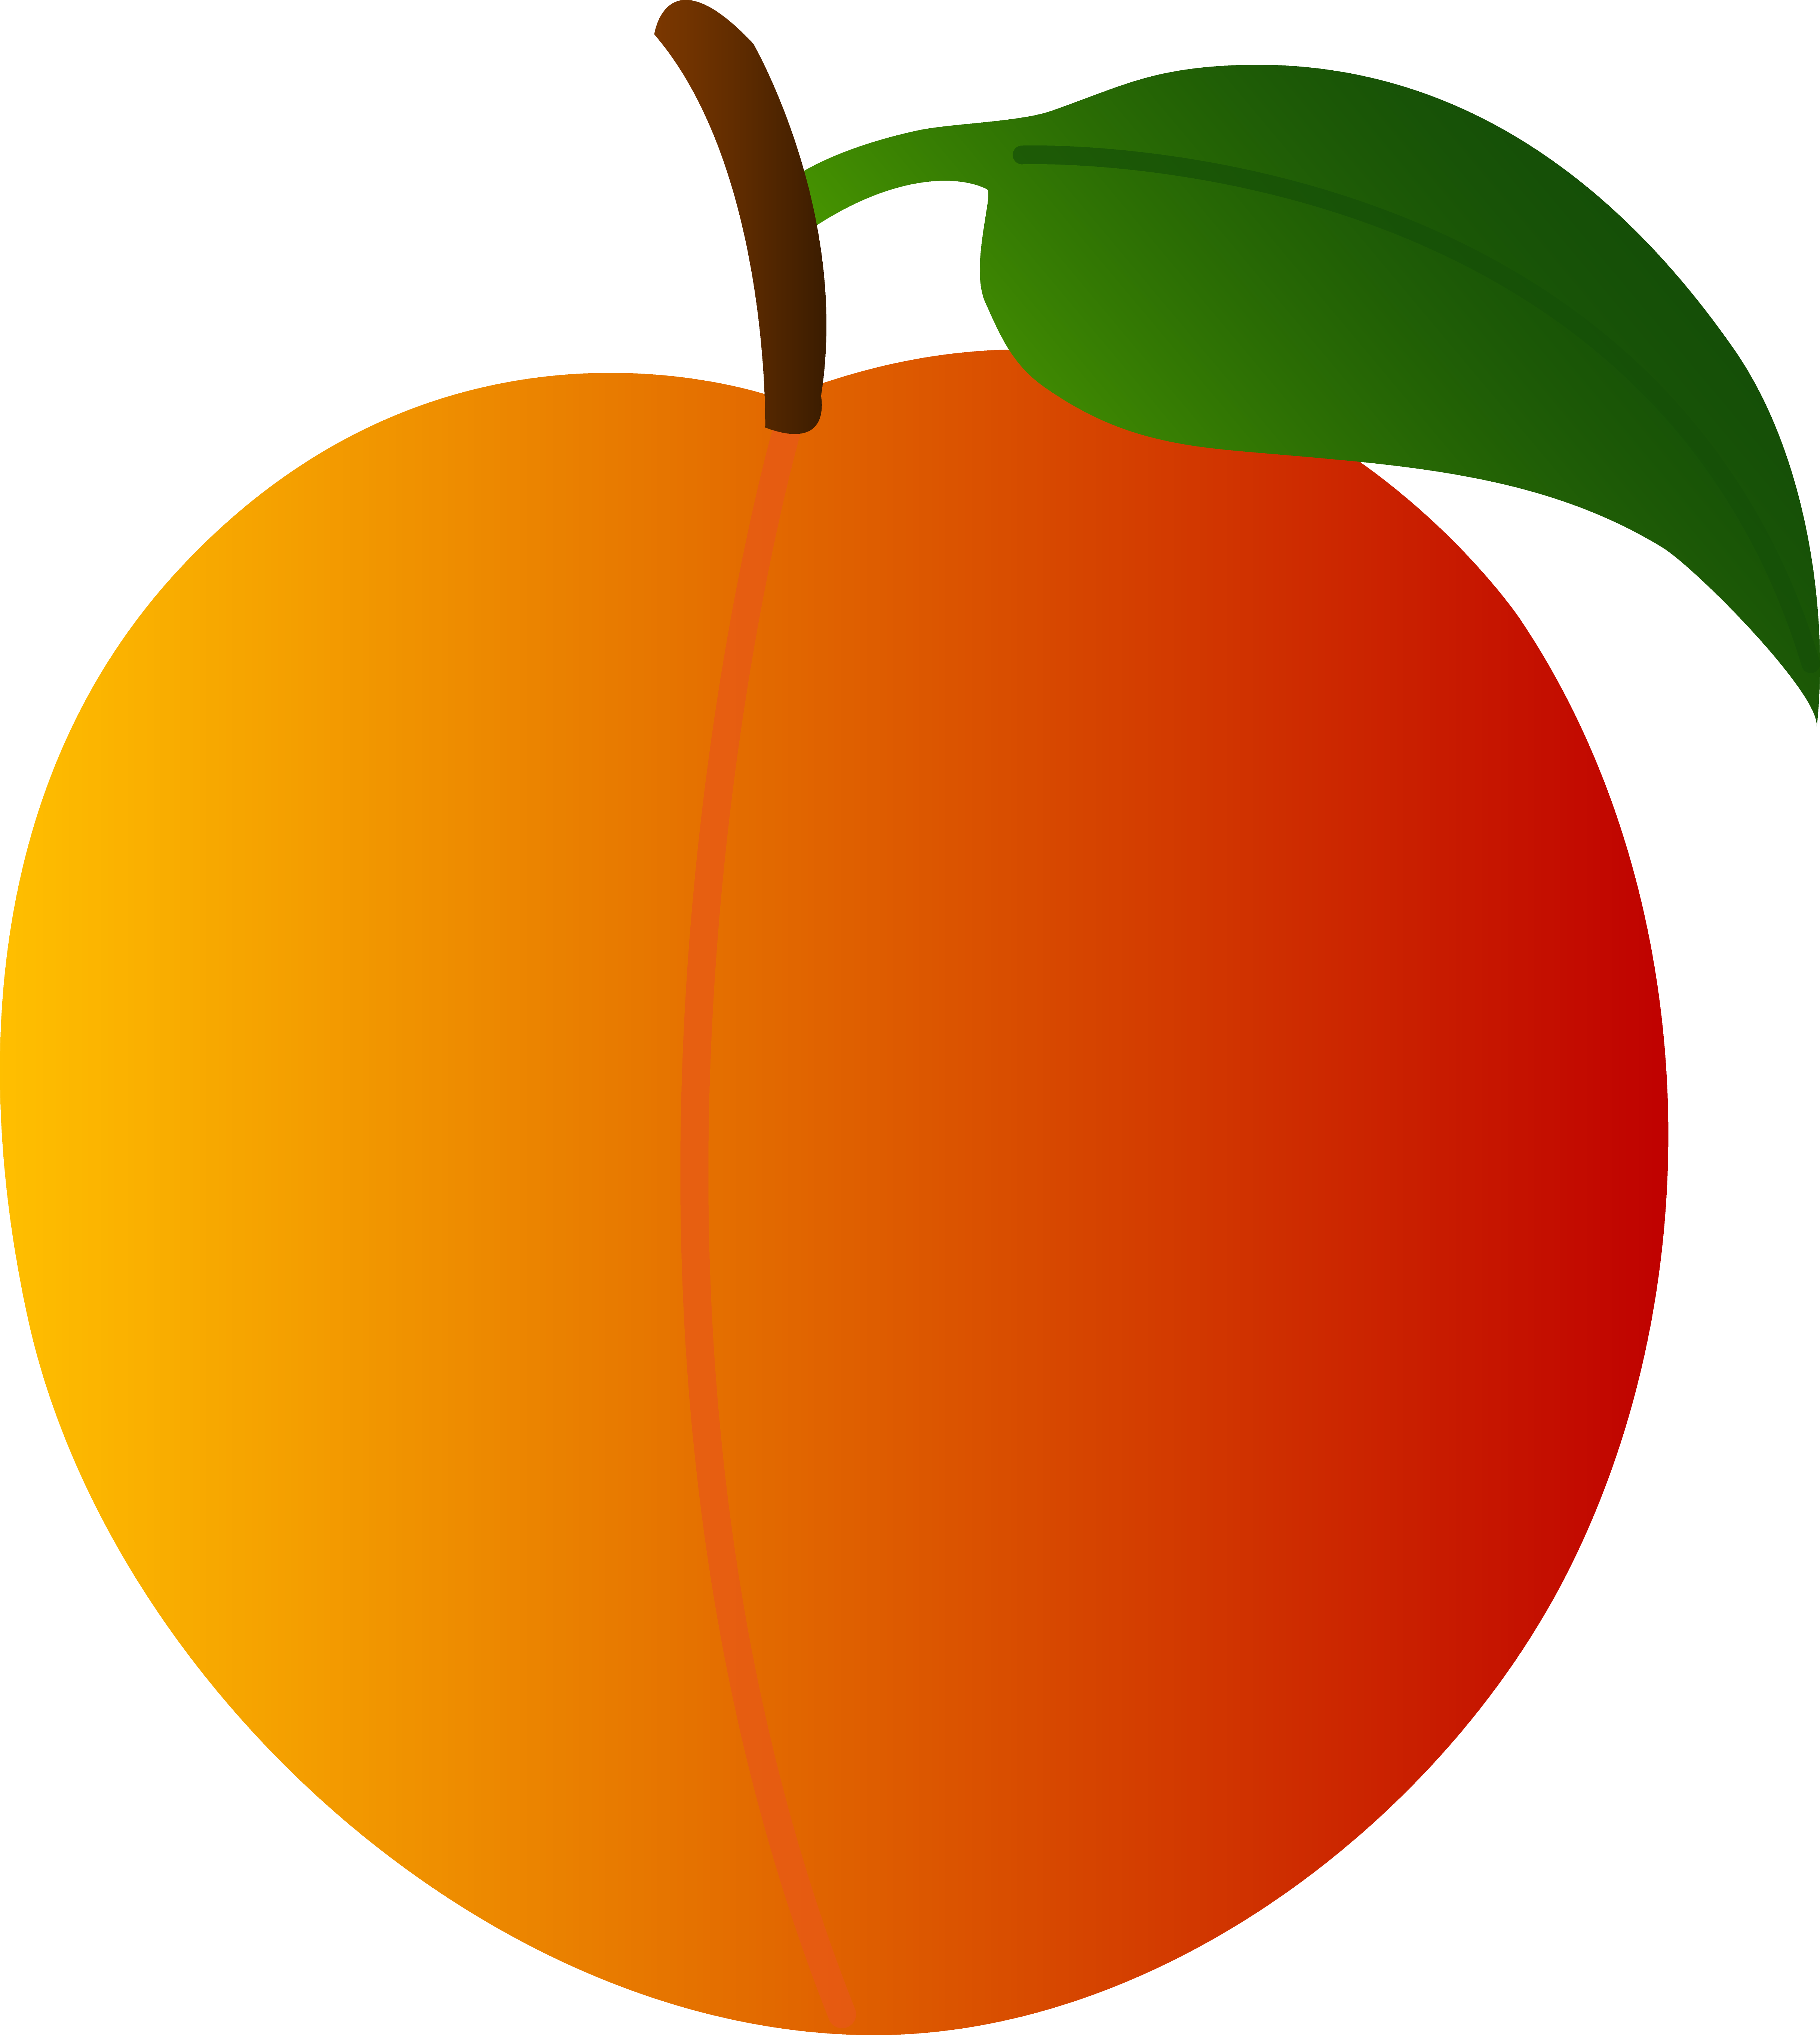 Peaches clipart banner royalty free library Free Peach Cliparts, Download Free Clip Art, Free Clip Art on ... banner royalty free library